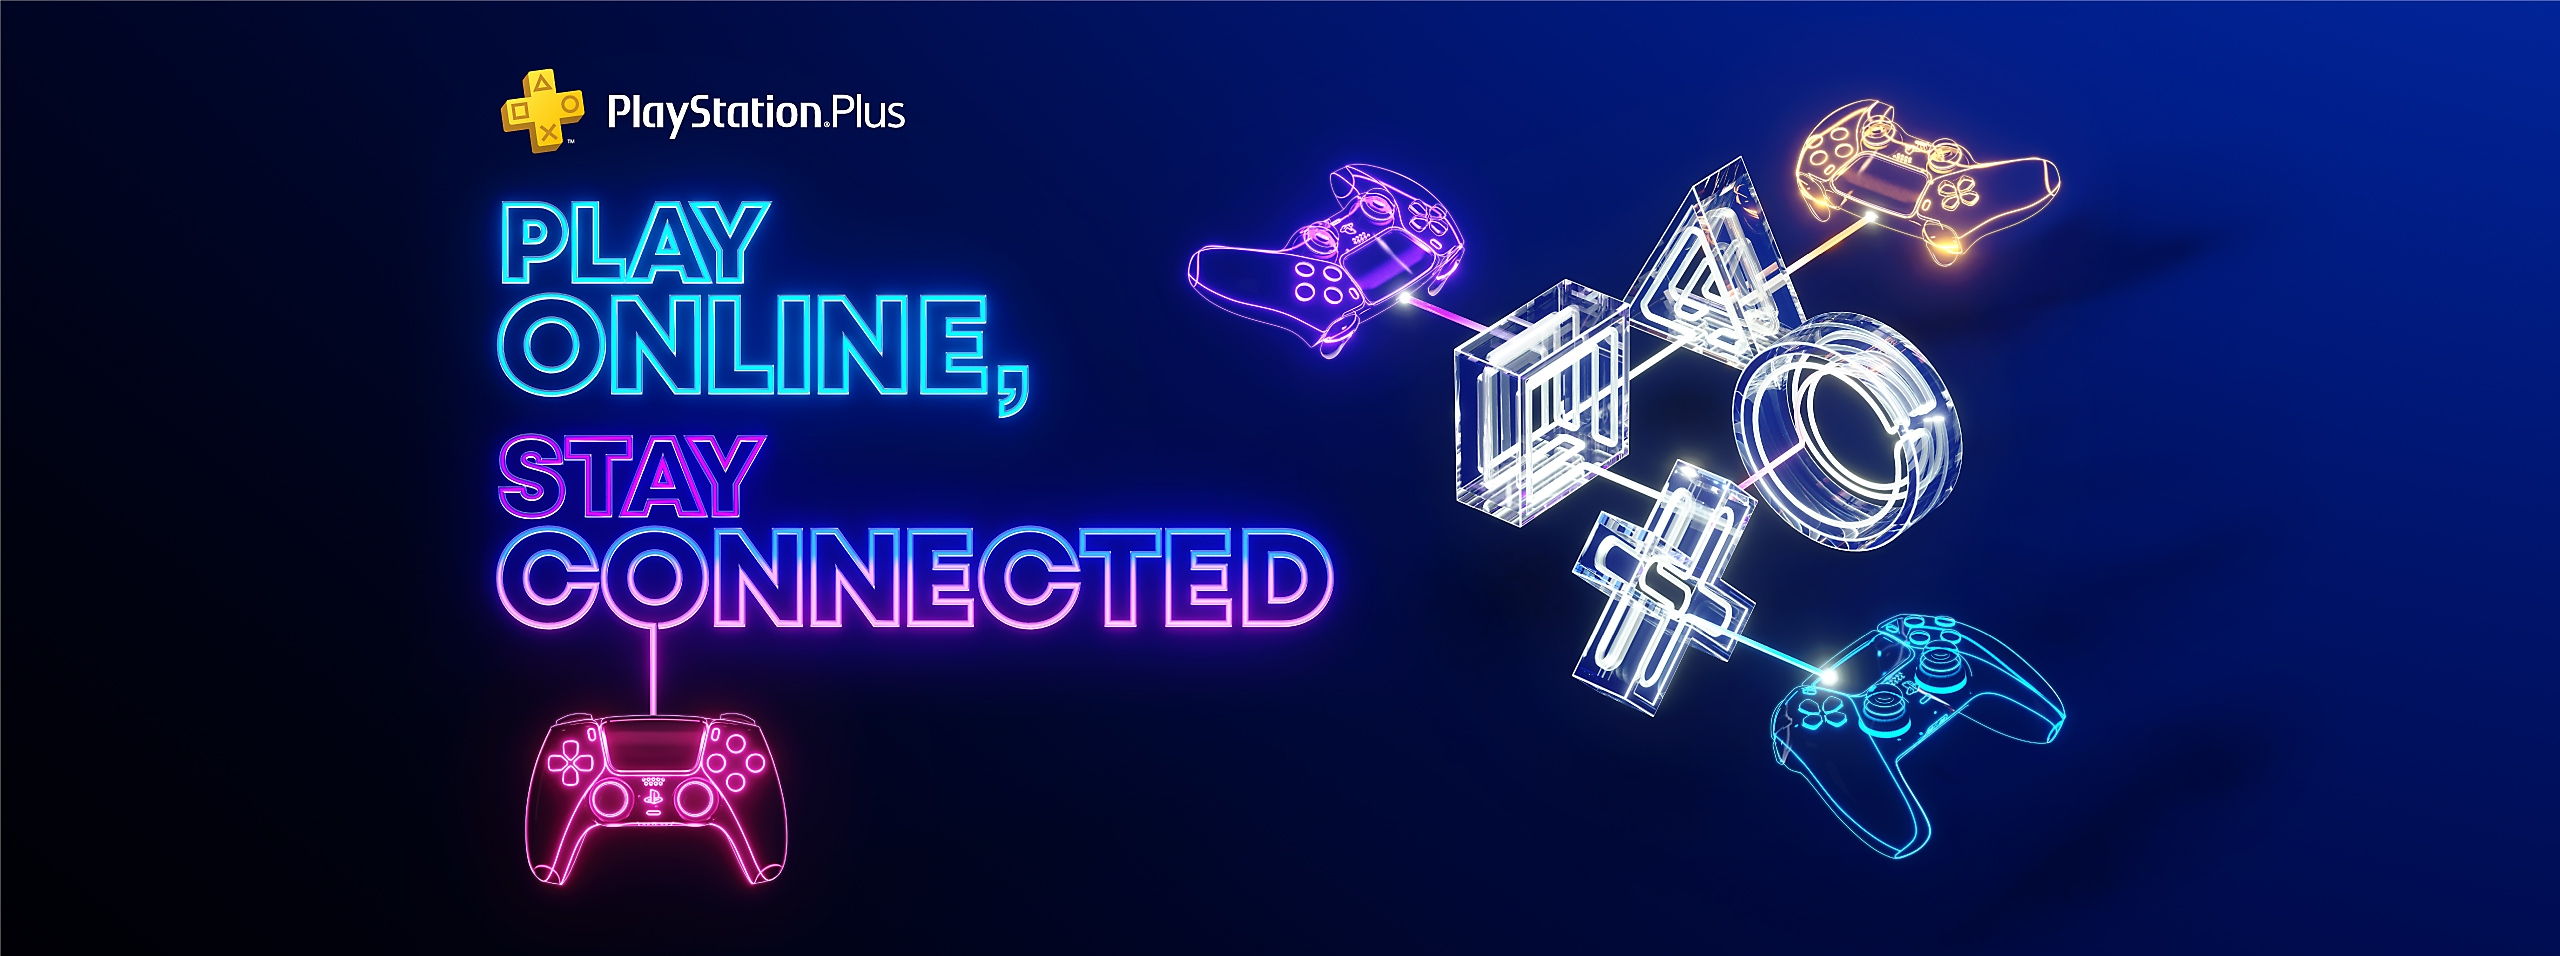 Play Online Stay Connected Campaign banner